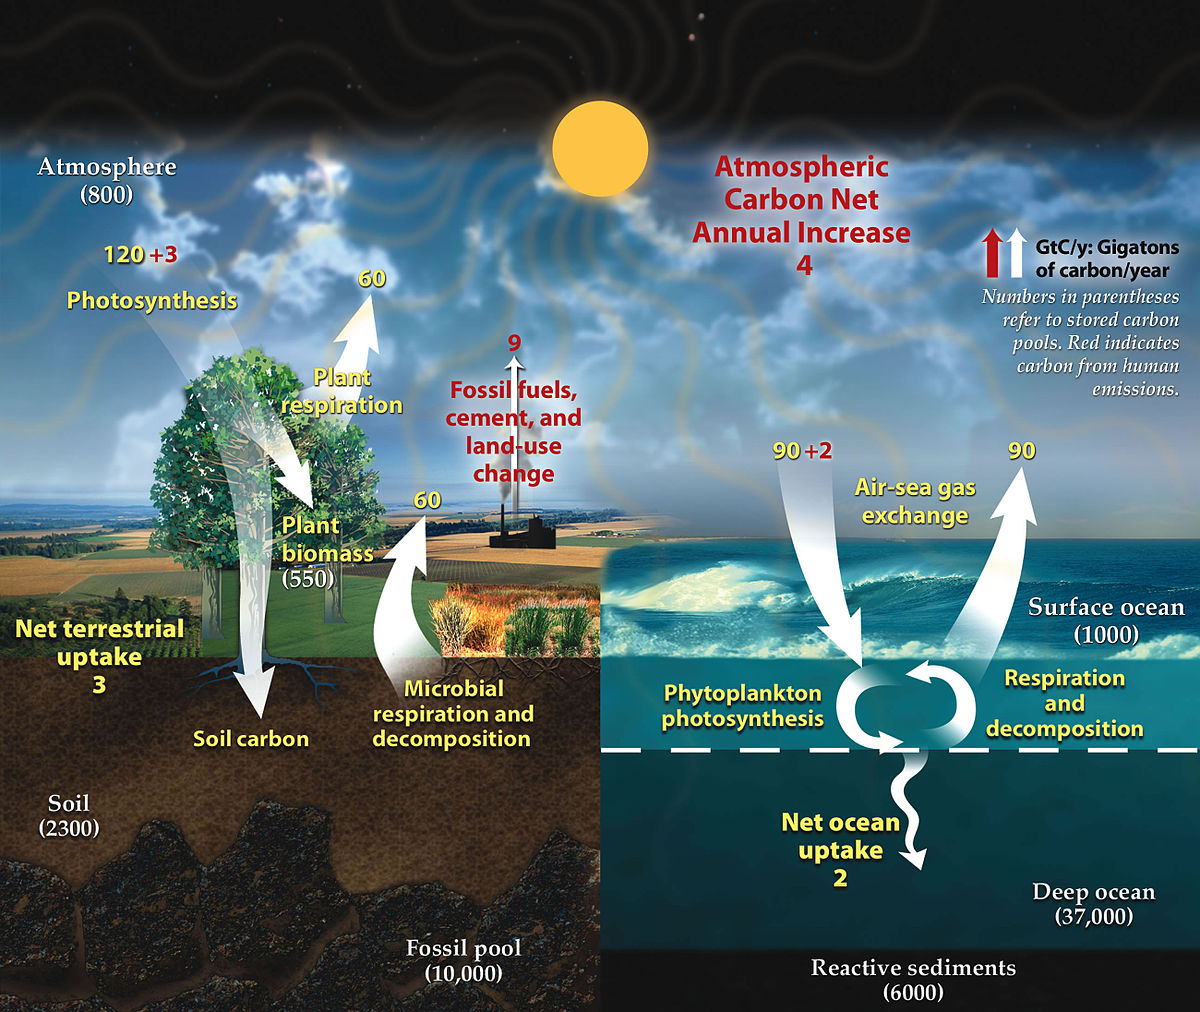 Carbon Cycle Wikipedia The Earth Lithosphere Image Gallery For Inside Of Diagram